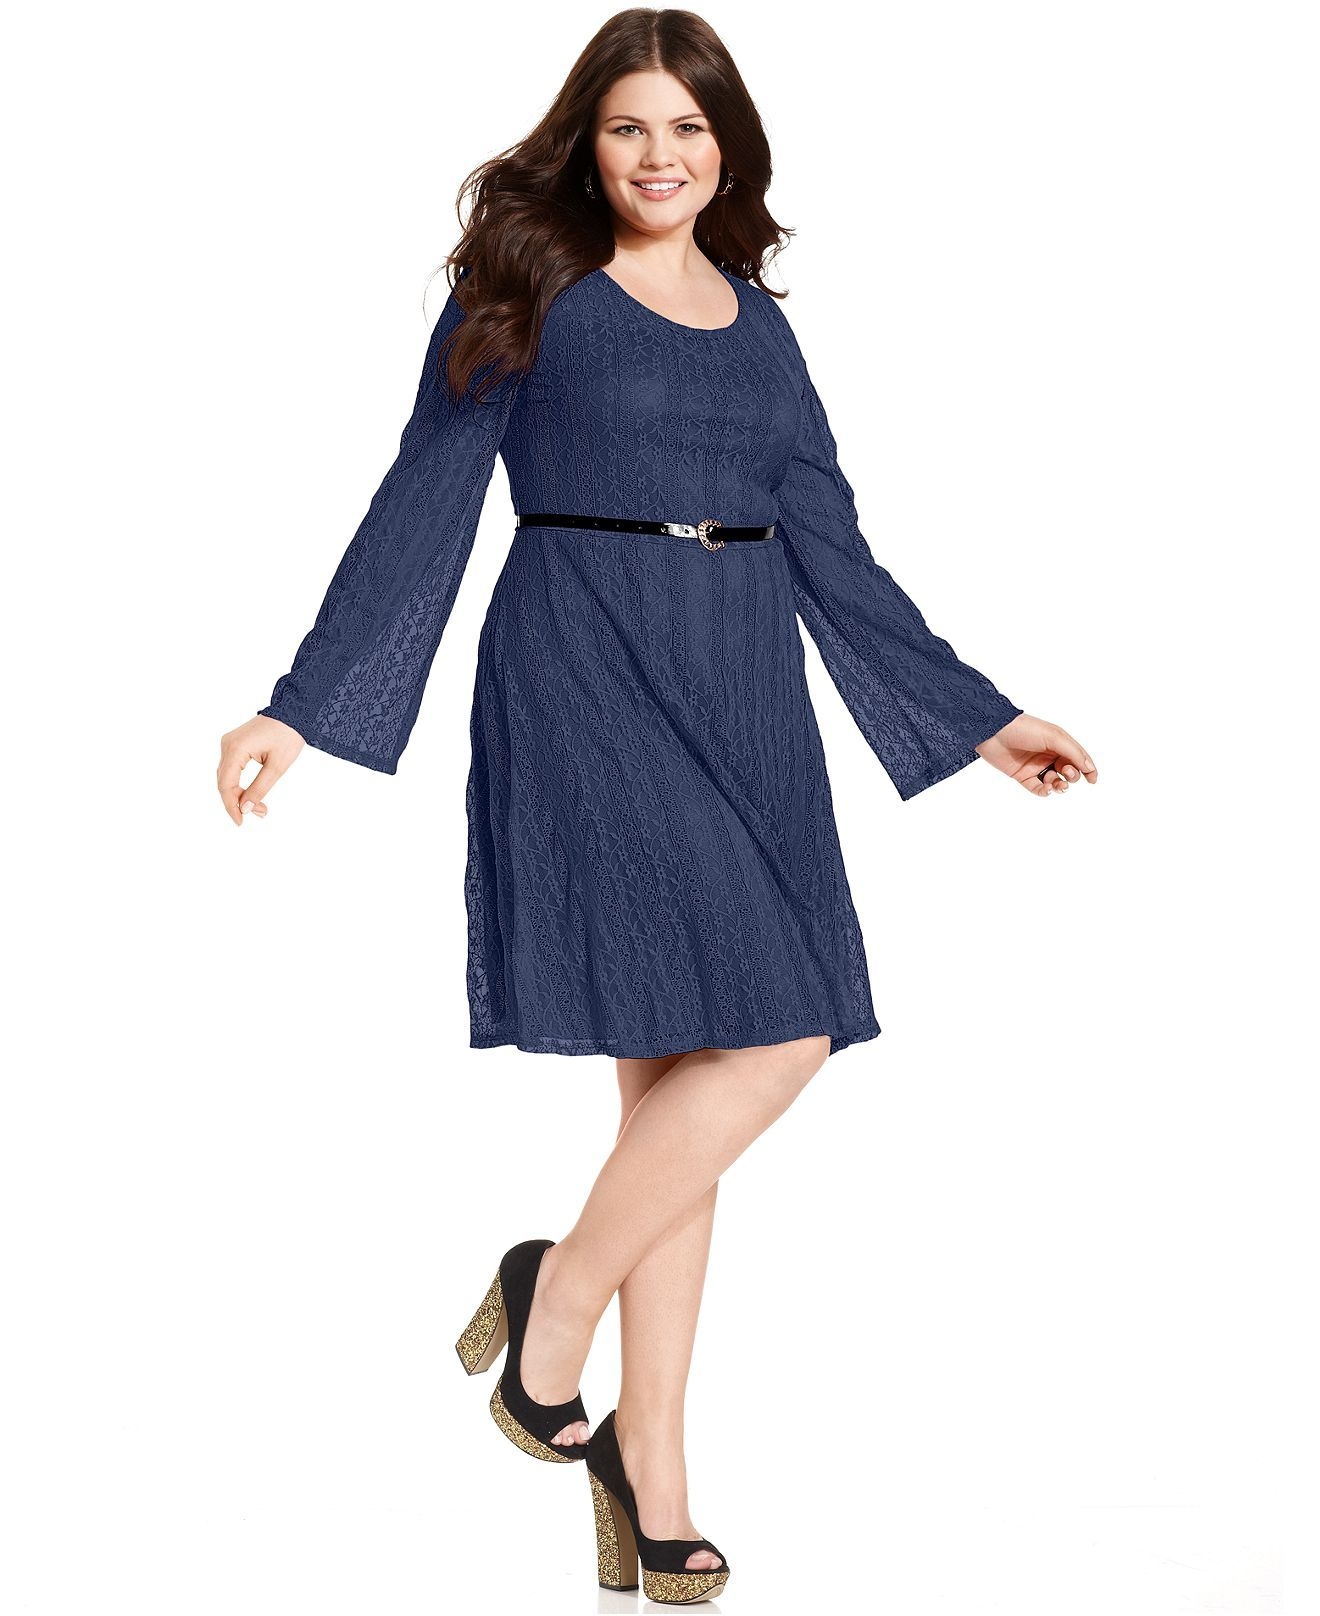 Ruby Rox Plus Size Dress, Long-Sleeve Lace Belted